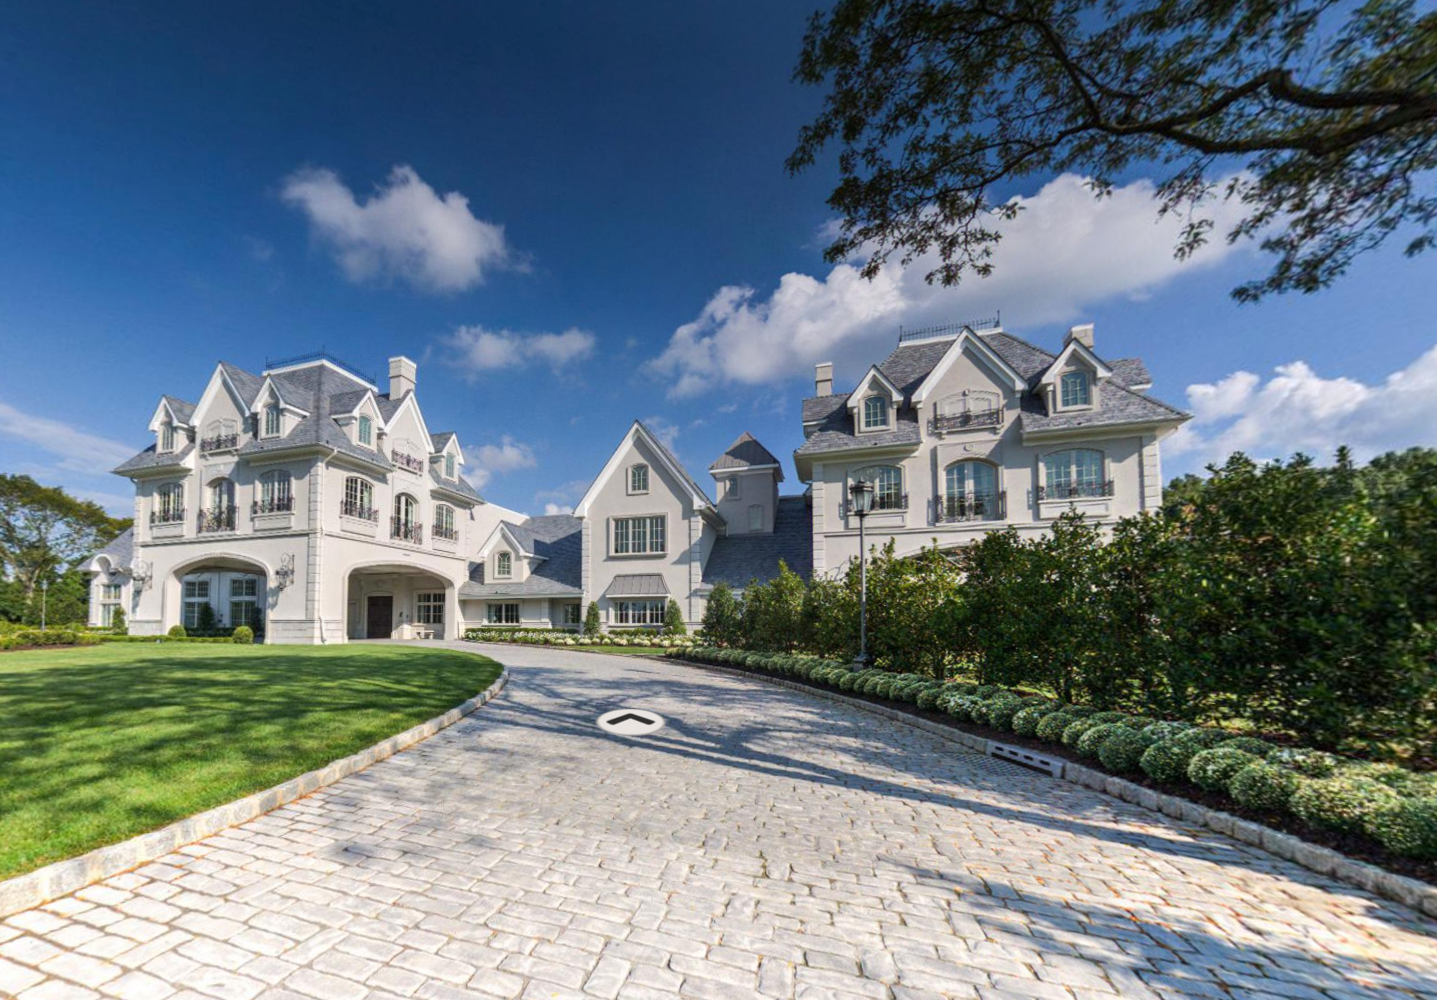 View Virtual Tour of the Park Chateau Estate & Gardens in East Brunswick, NJ | 360 Site Visit